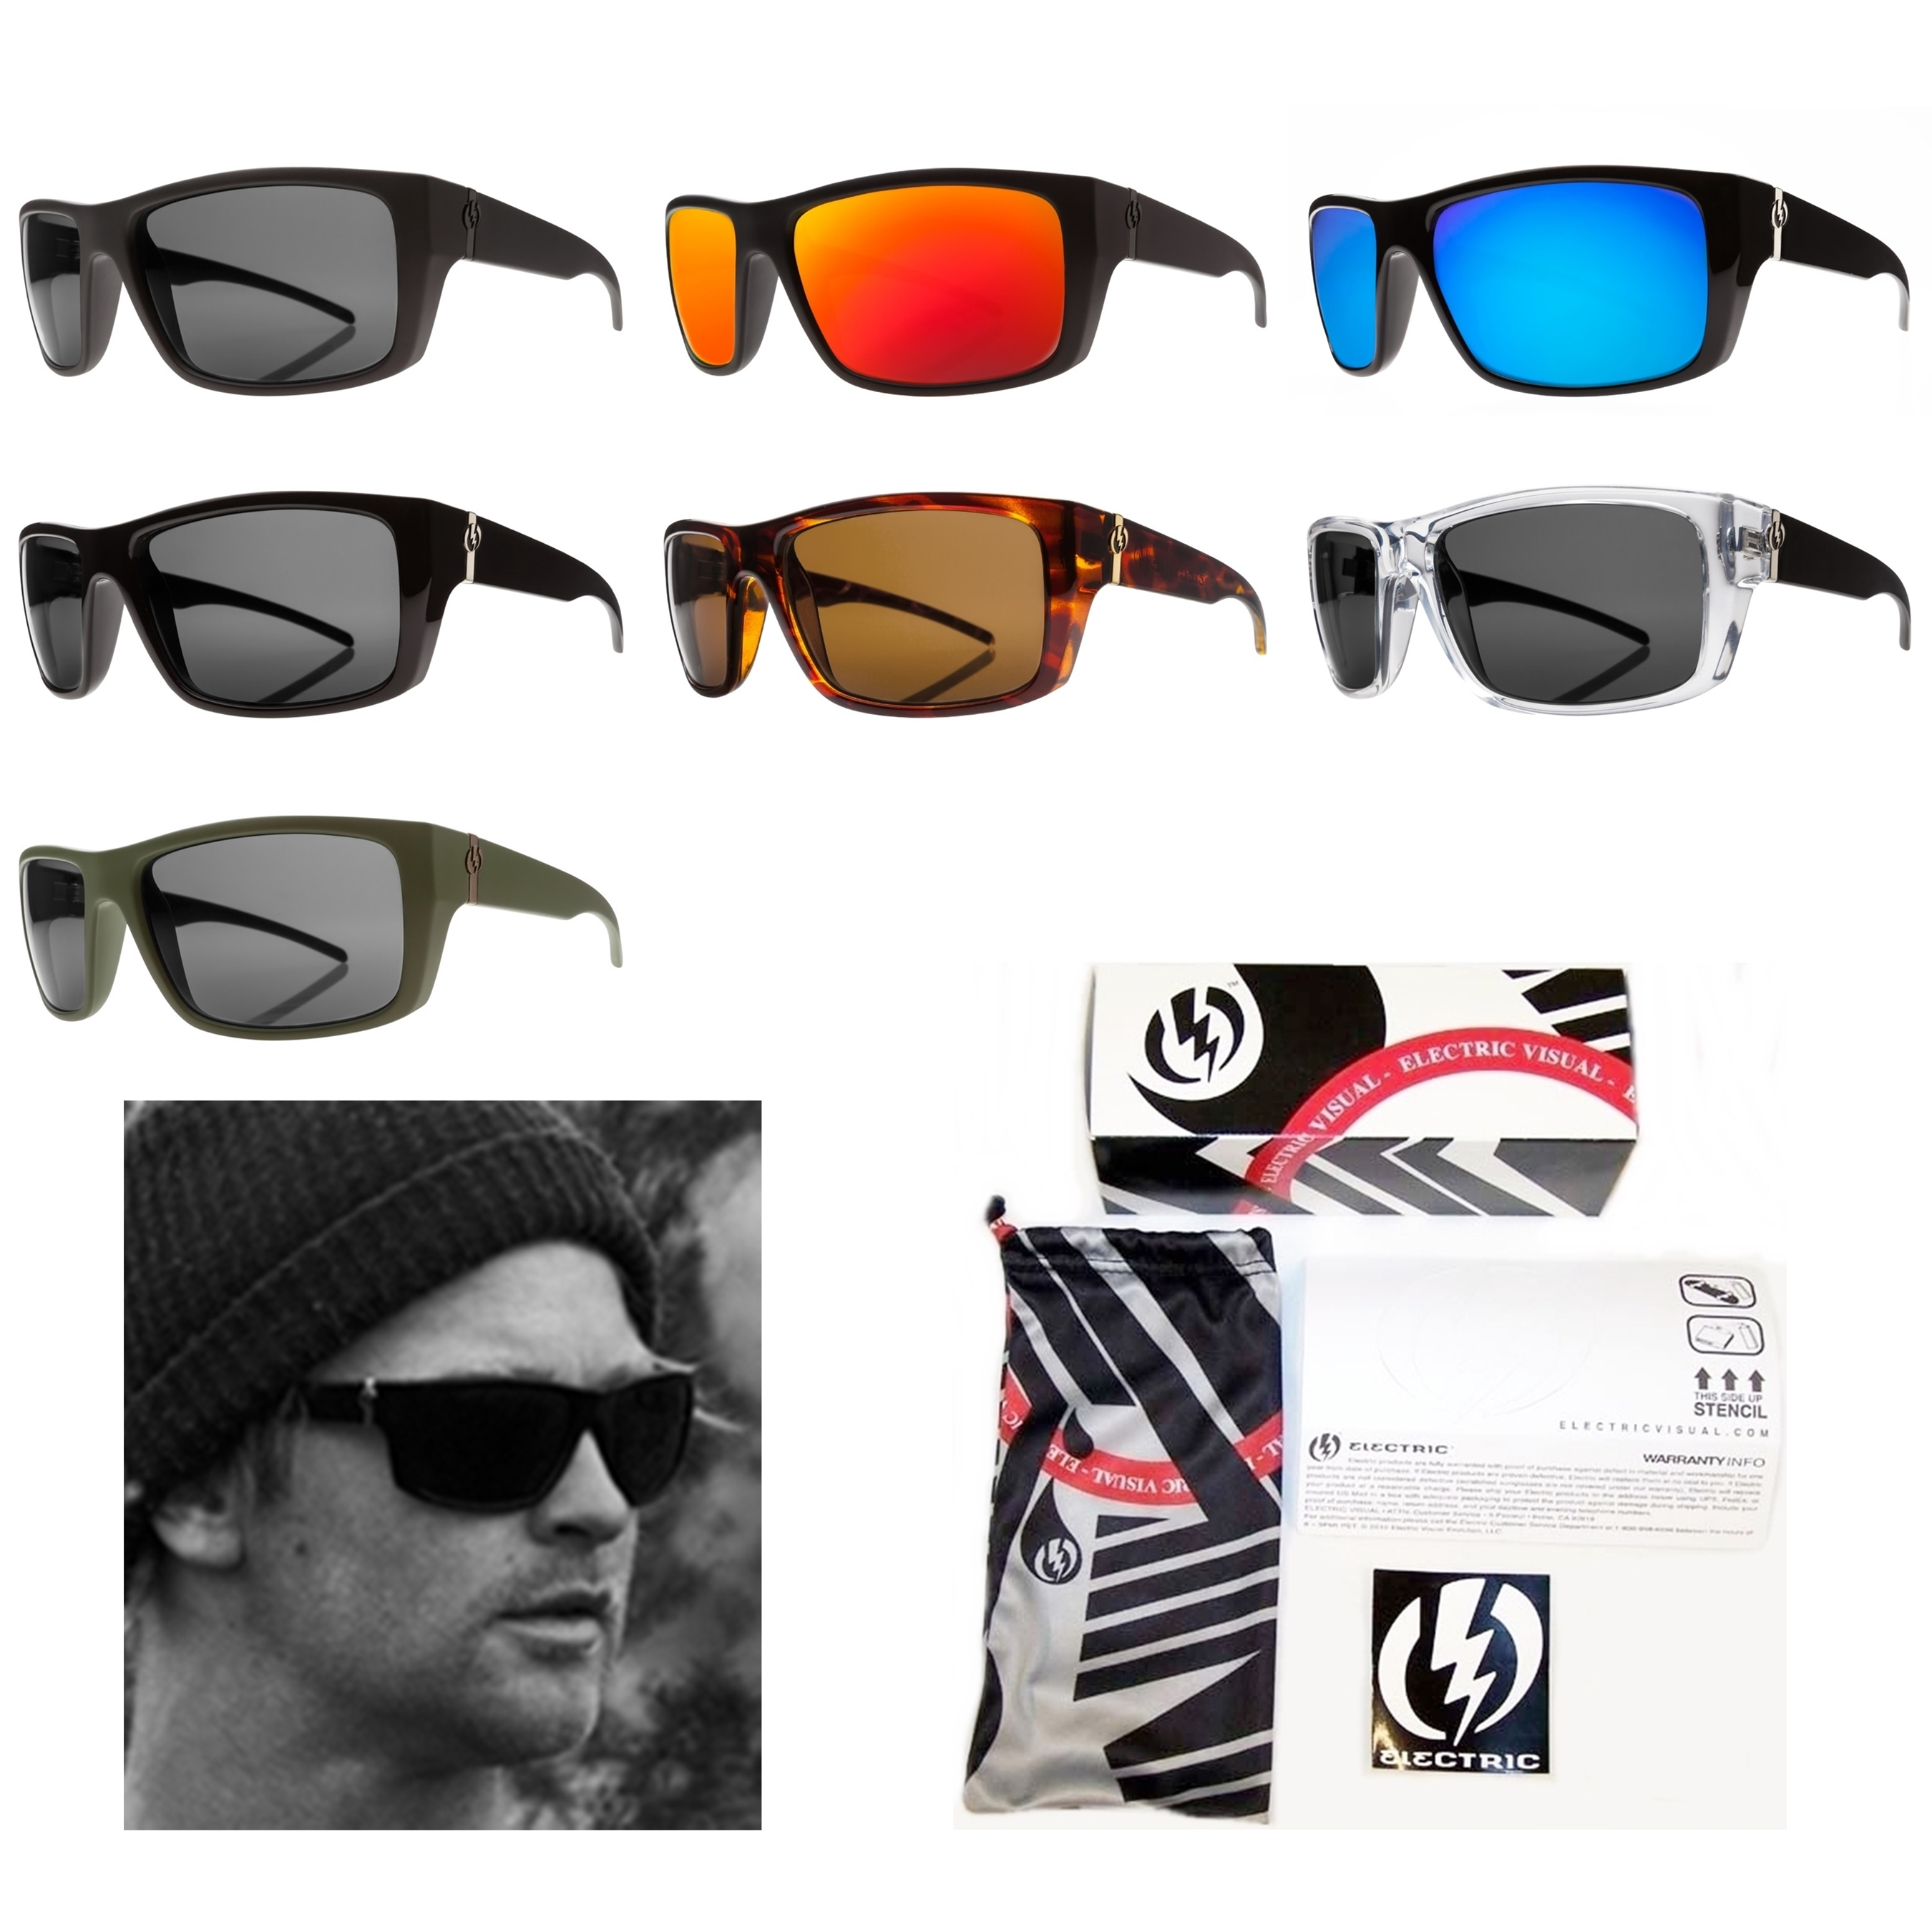 New Electric Visual Sixer Mens Rectangular Sunglasses Msrp 100 Ebay